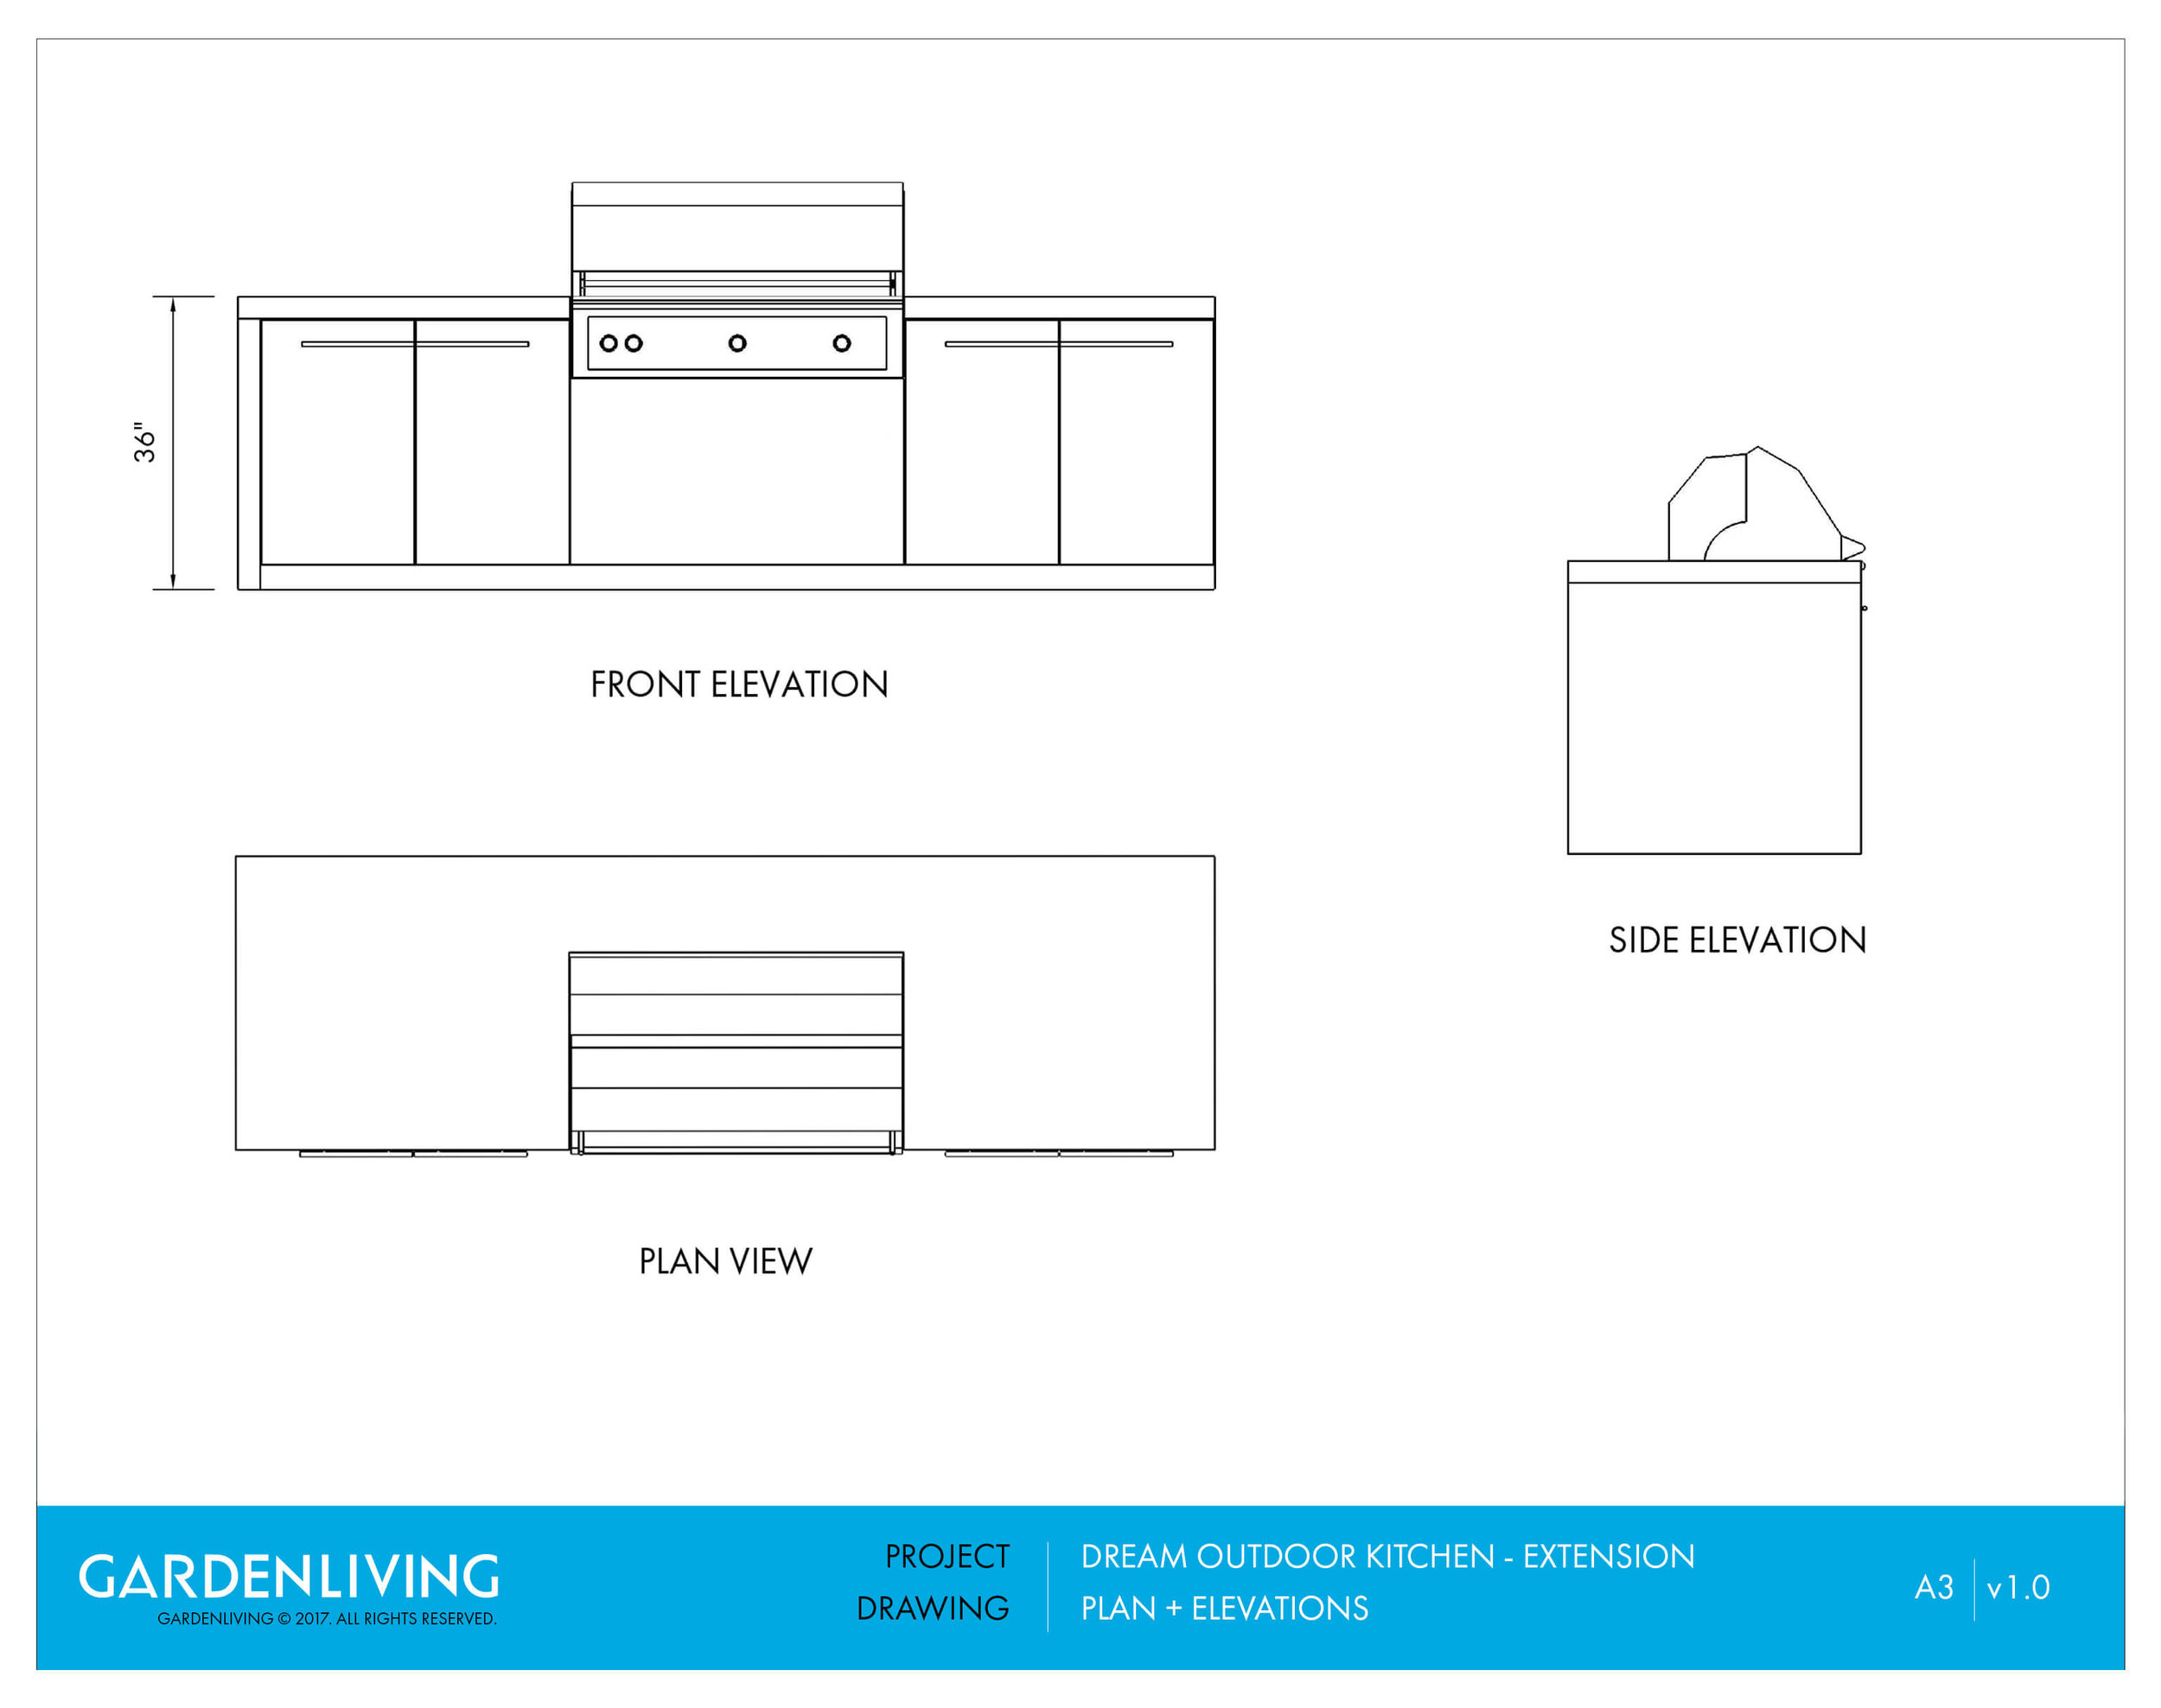 Outdoor Kitchen Poolscape - Plan. Elevations Drawing.jpg